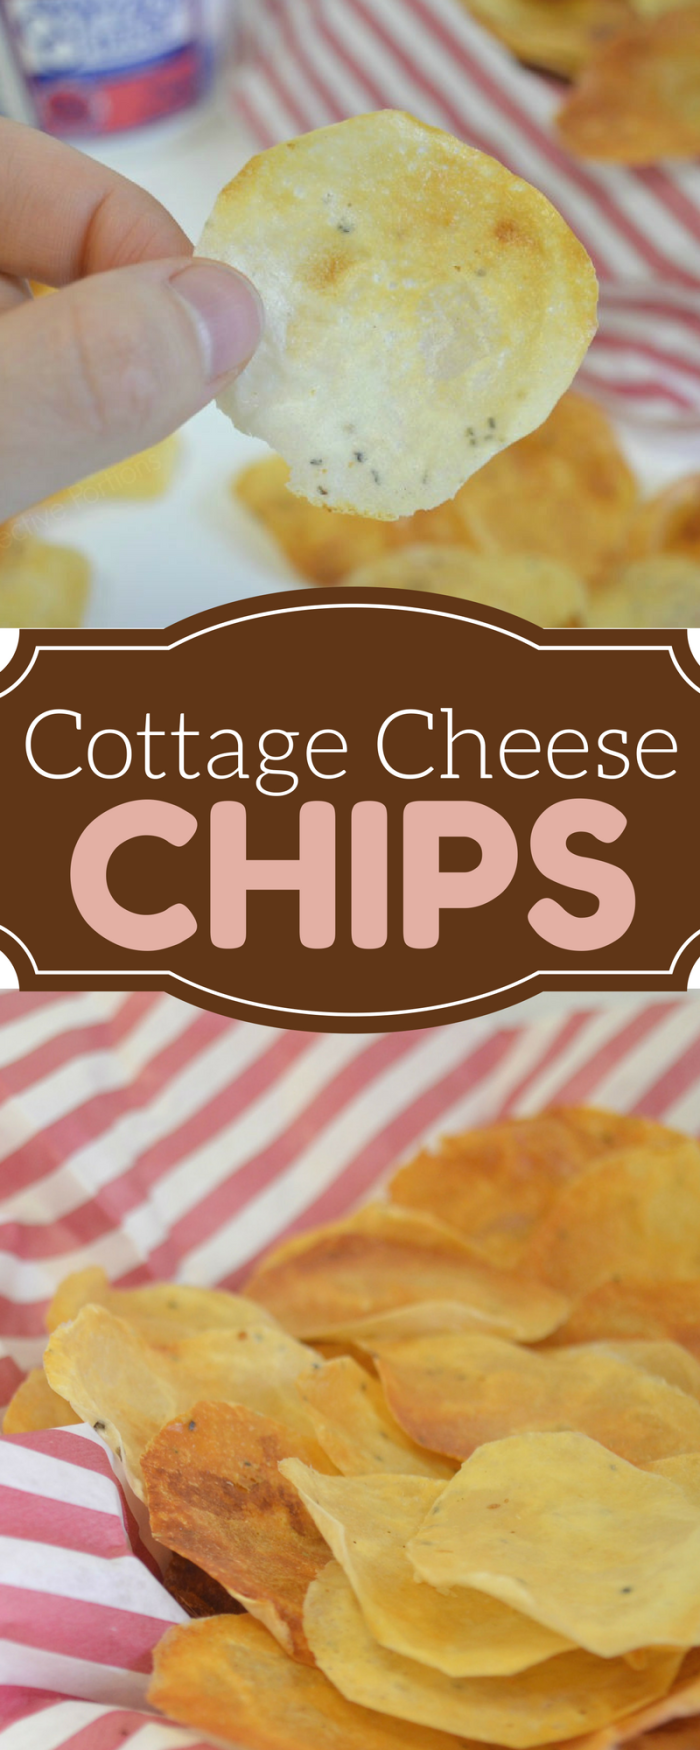 Astounding Cottage Cheese Crisps Recipe Perspective Portions Download Free Architecture Designs Intelgarnamadebymaigaardcom